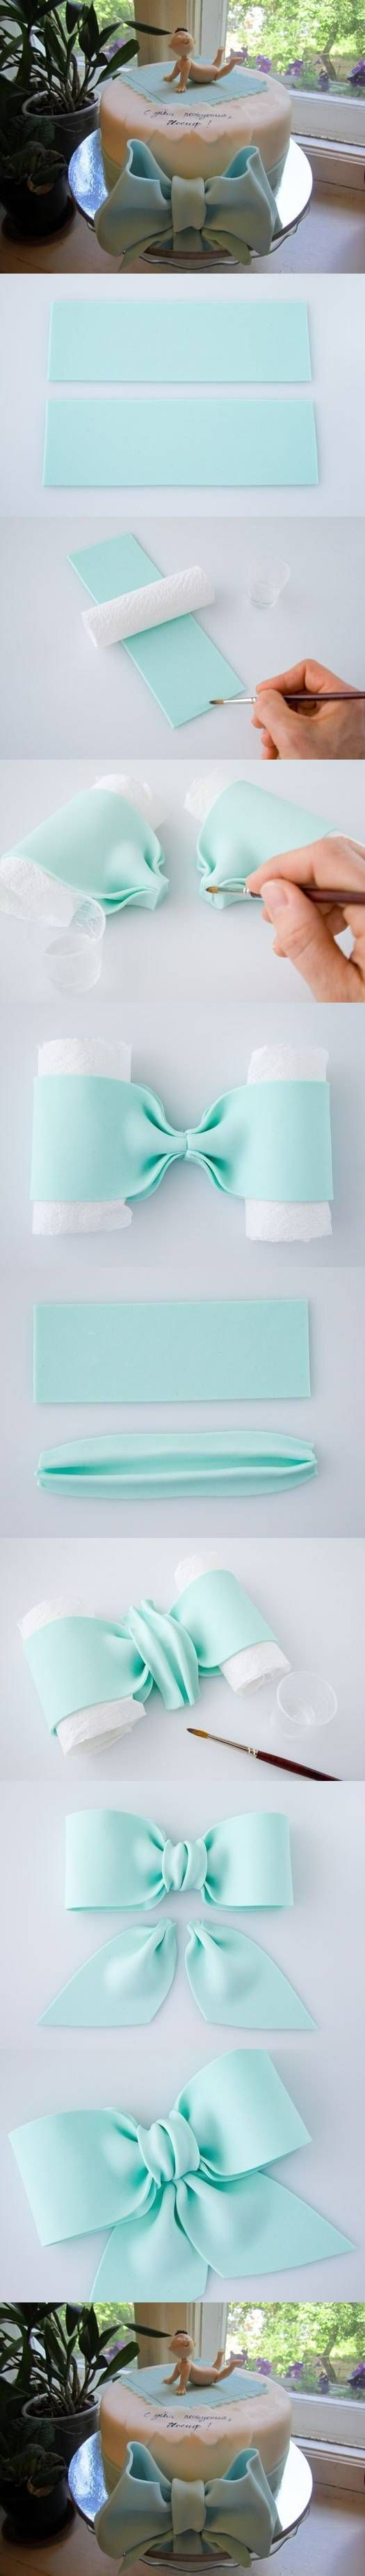 how to make a fondant bow tie